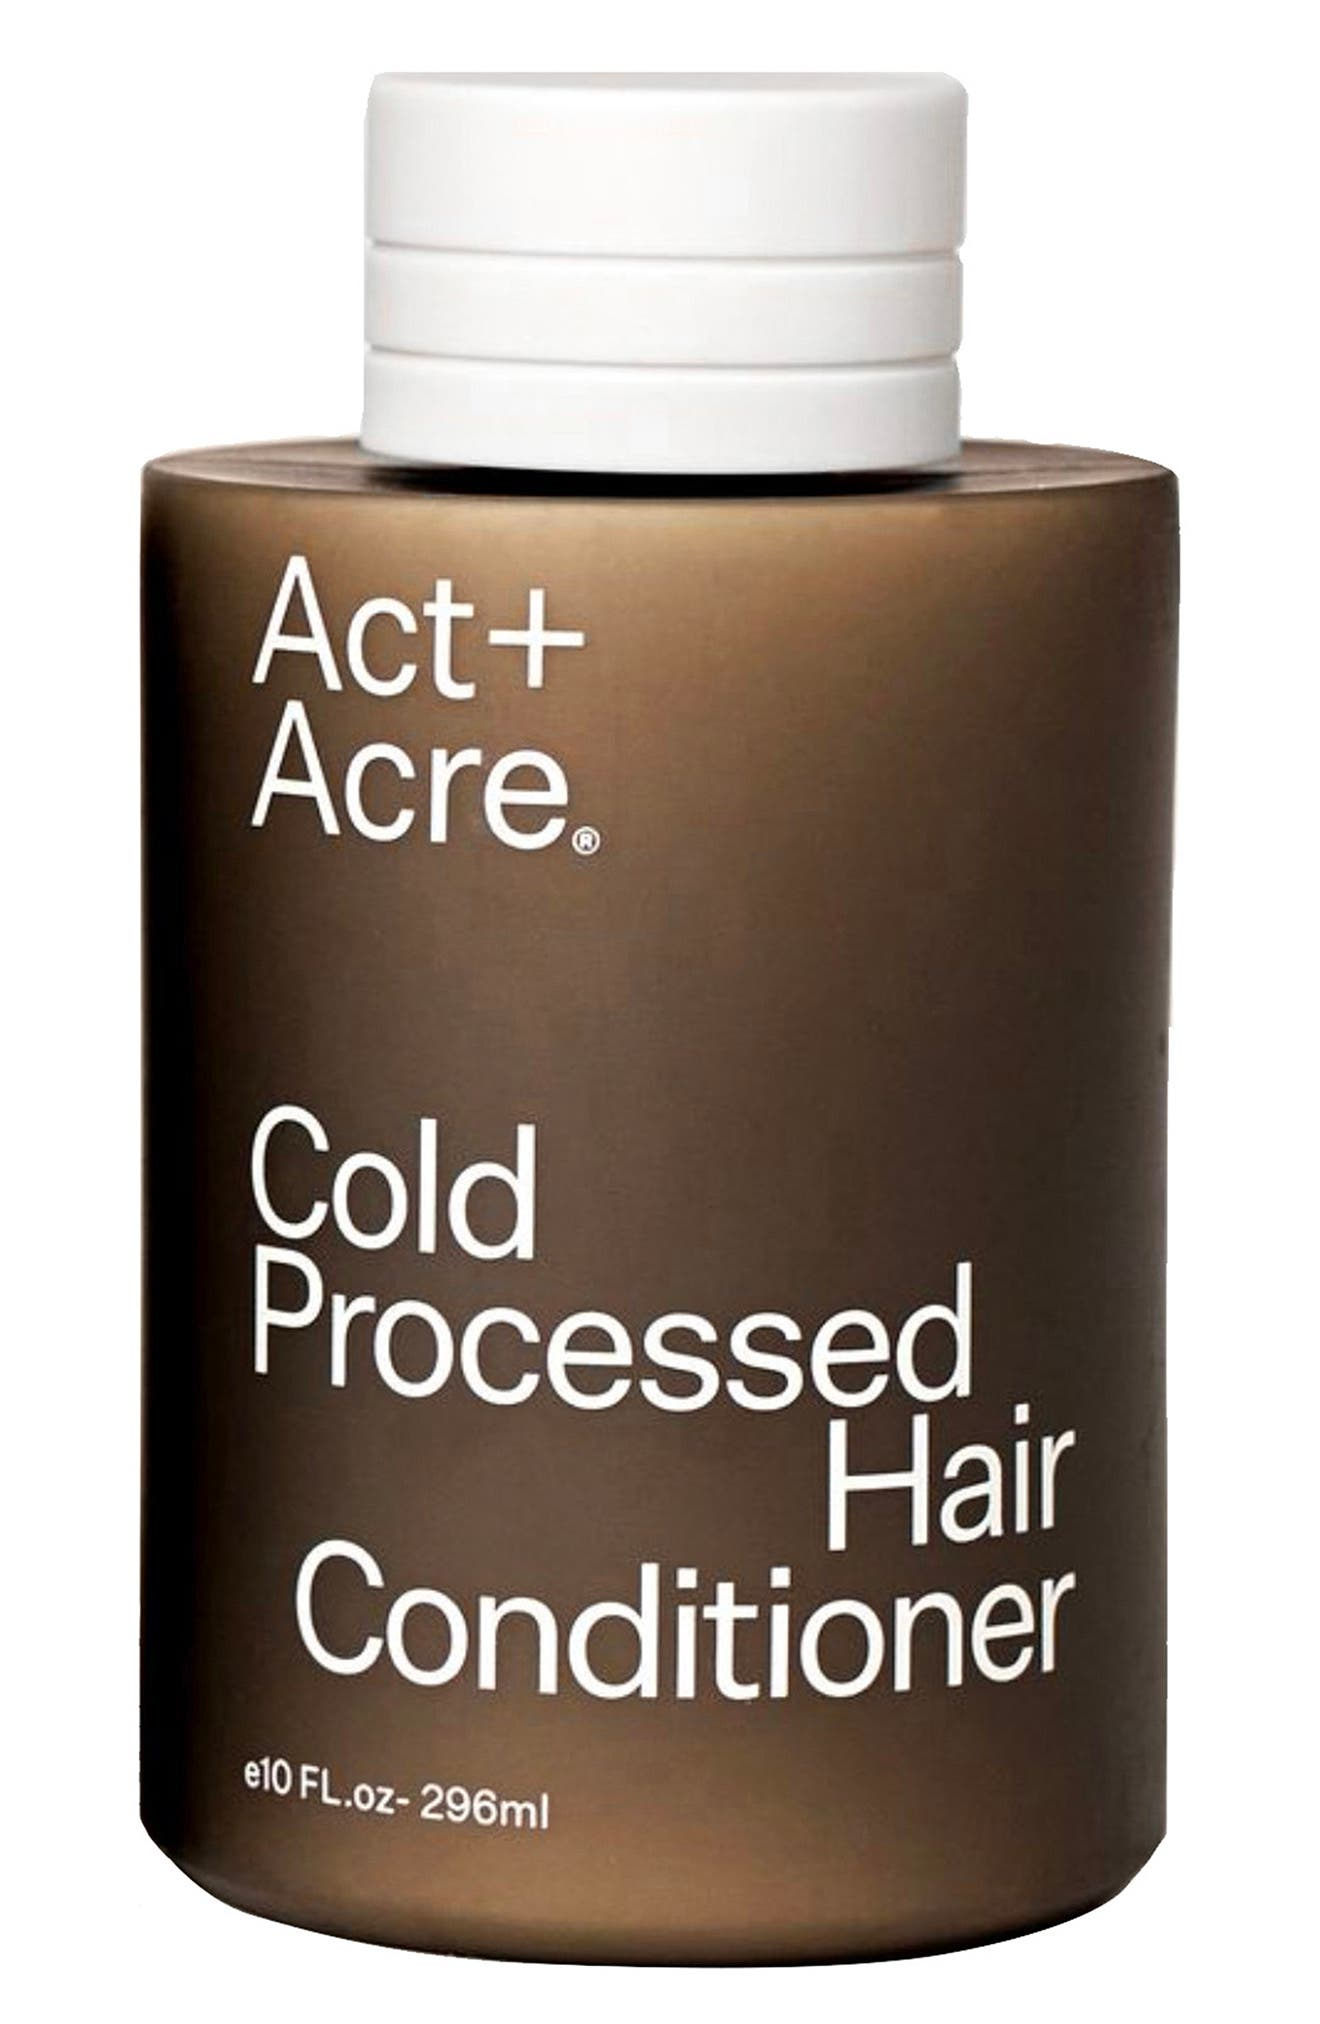 Act+Acre Cold Processed Hair Conditioner in No Color at Nordstrom